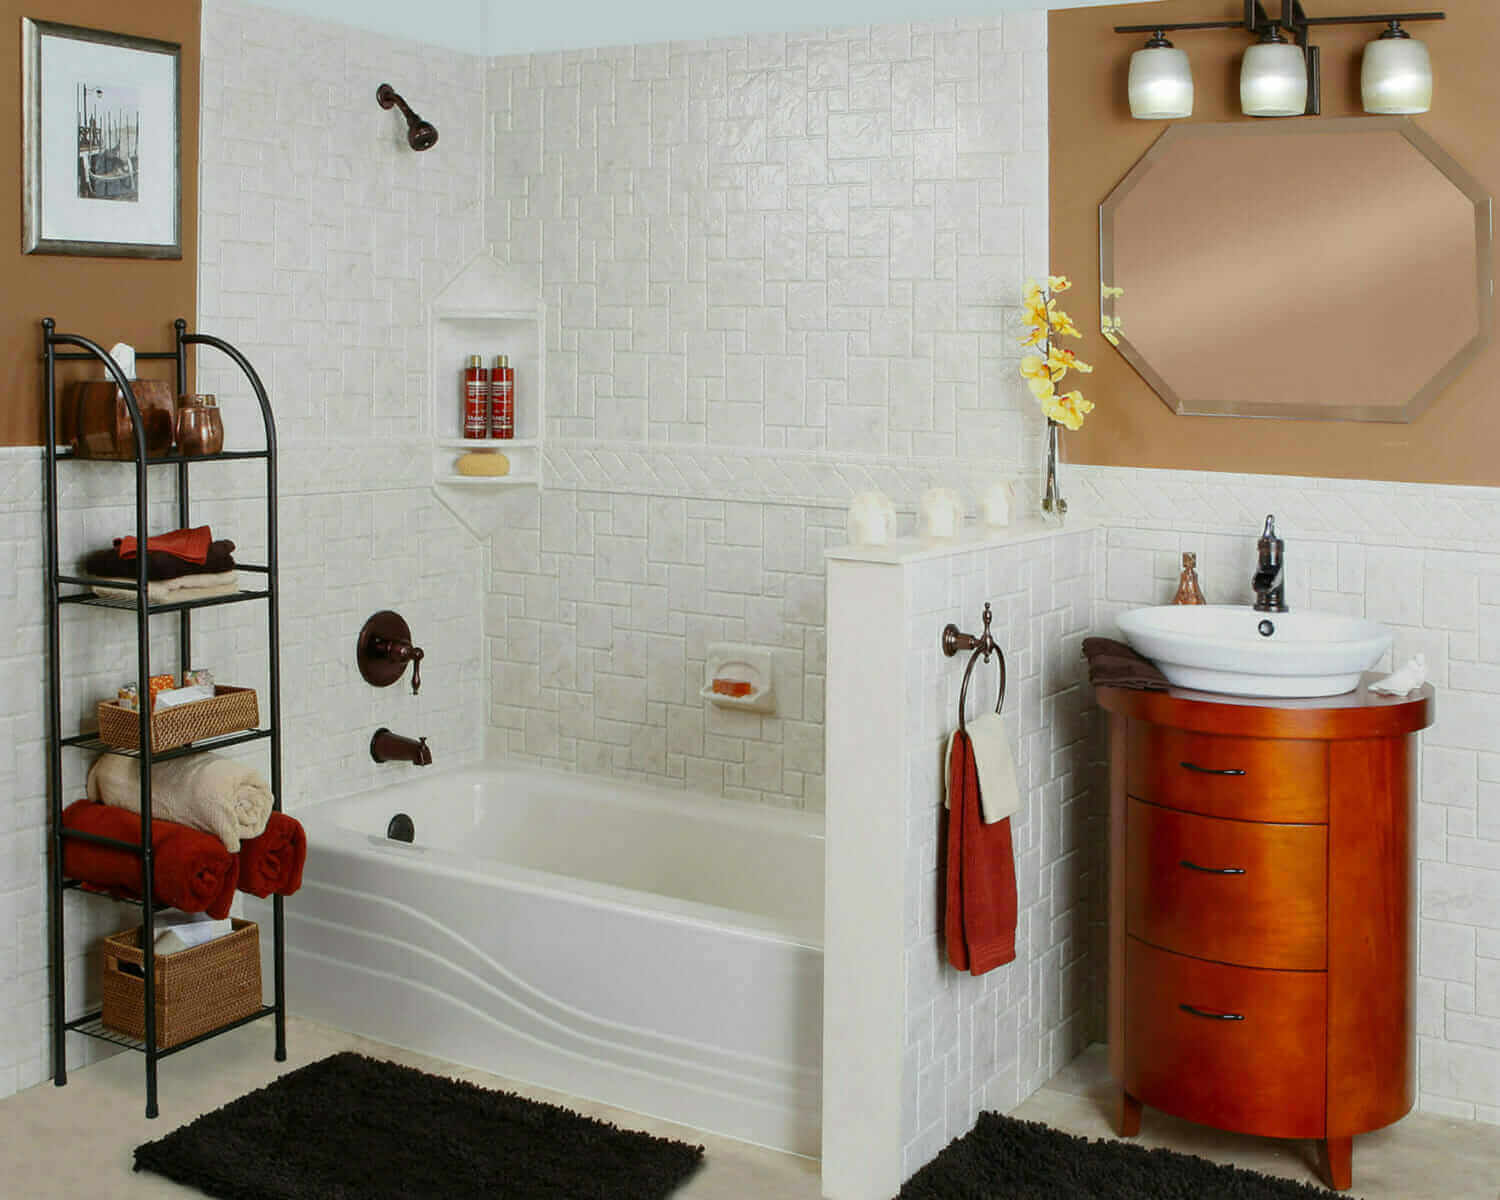 Bathroom Remodeling Salt Lake City salt lake city professional bathroom remodeling | five star bath